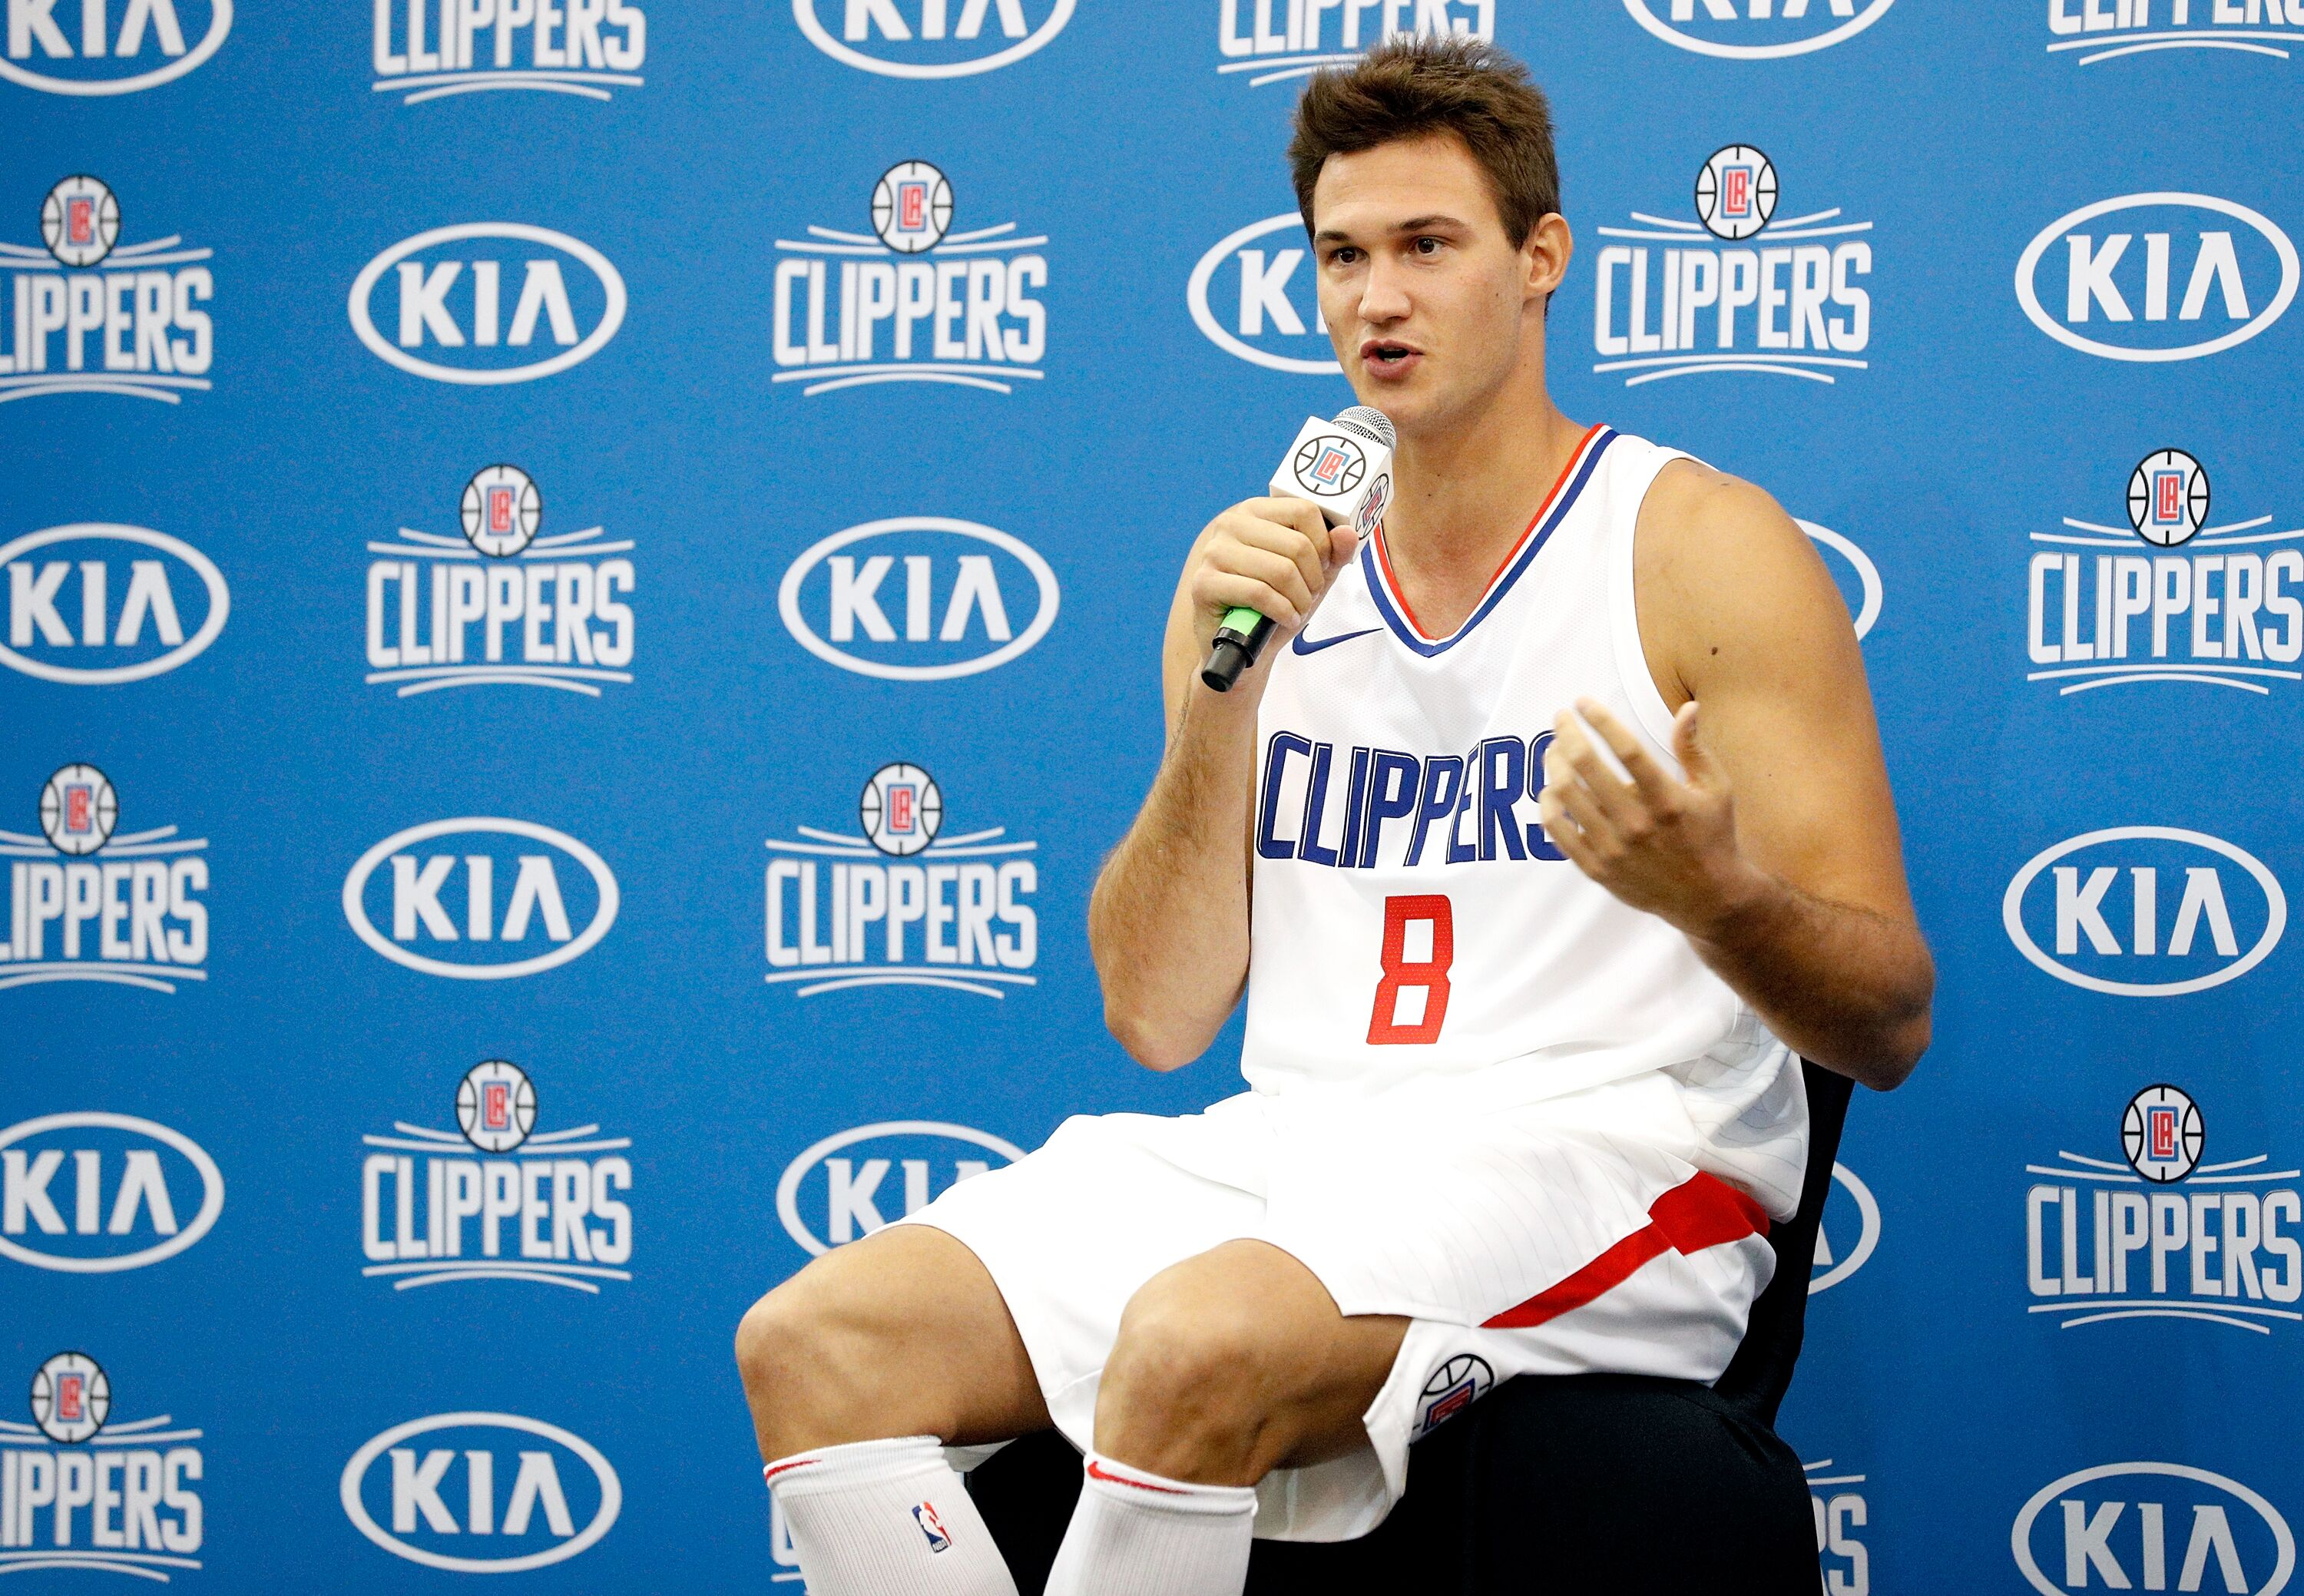 853782600-los-angeles-clippers-media-day.jpg